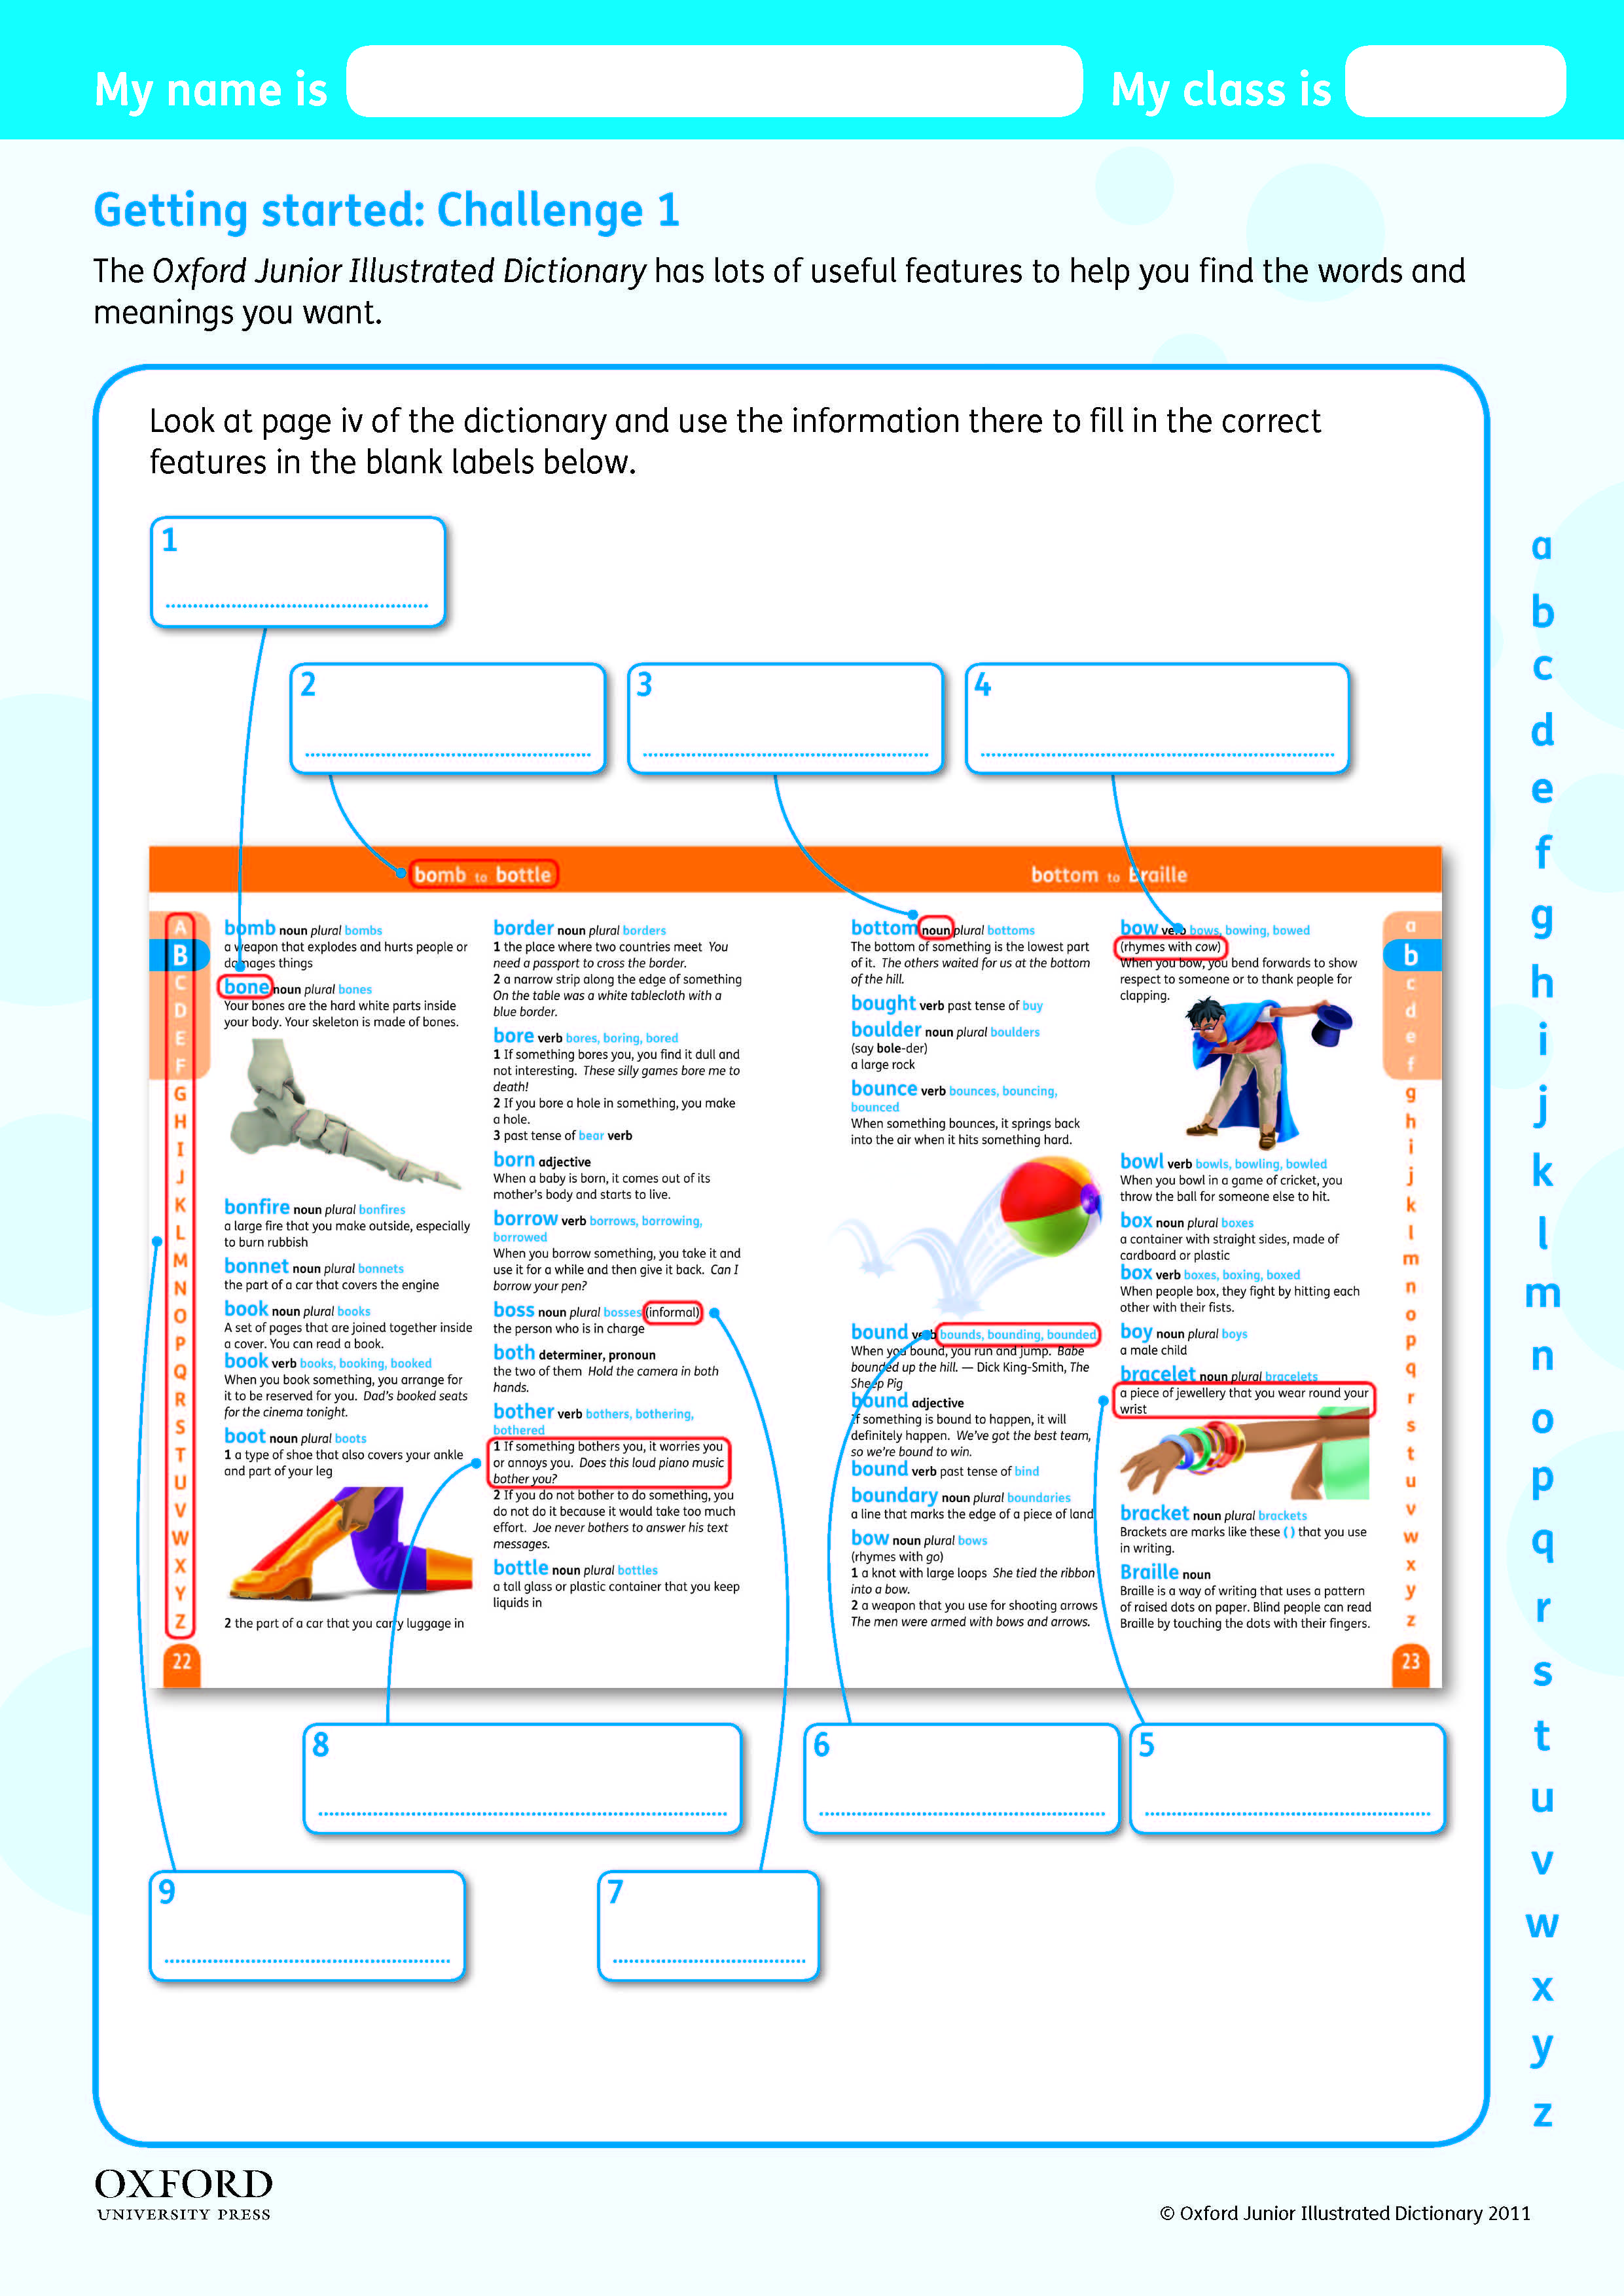 Download Your Free Oxford Junior Illustrated Dictionary Challenge